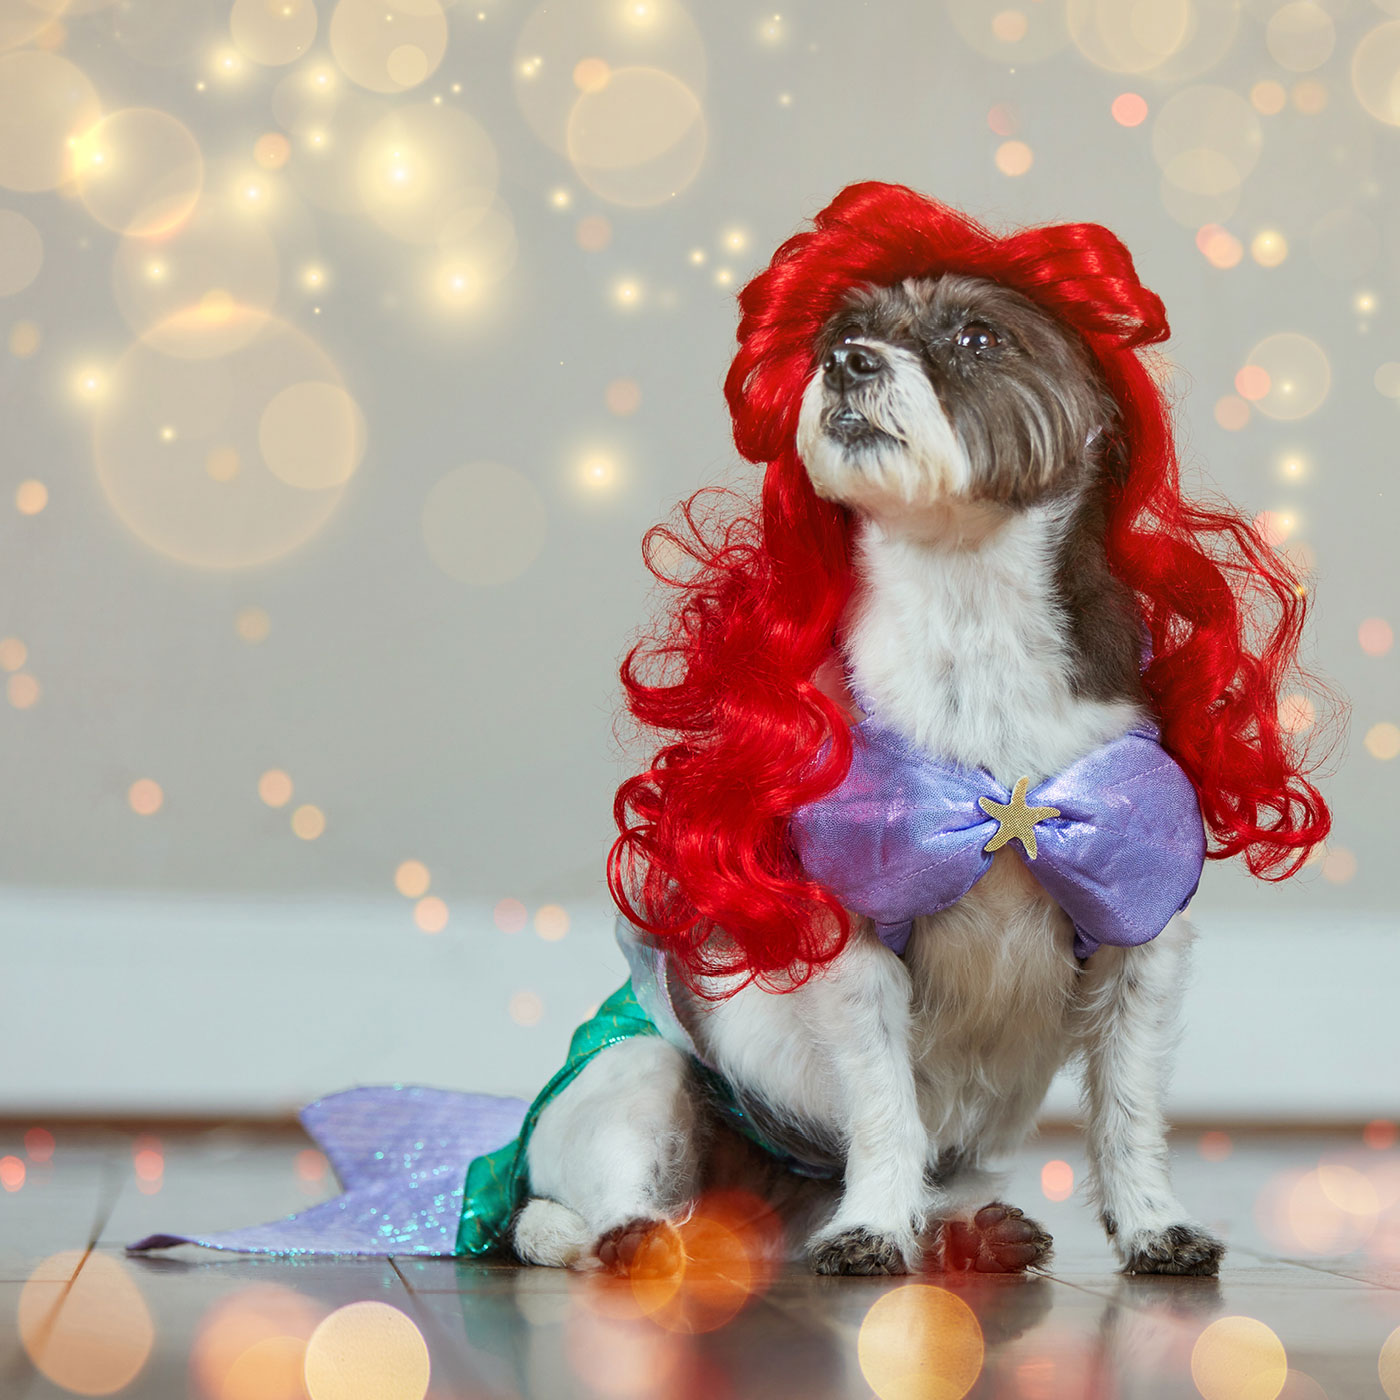 dog disney costumes - ariel dog costume from The Little Mermaid